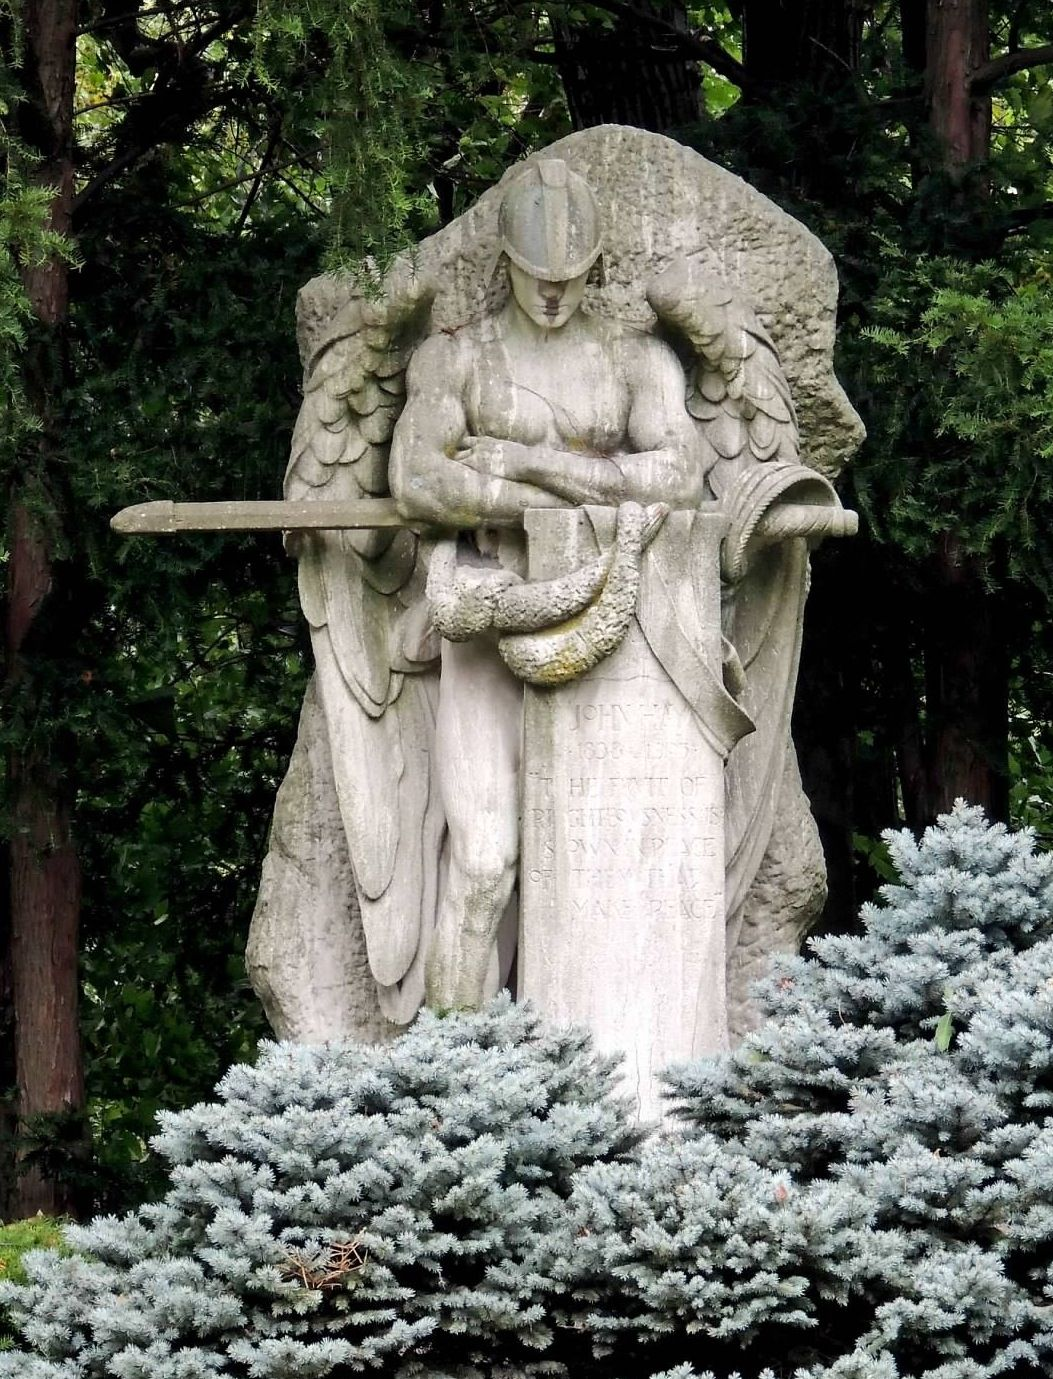 St Michael the Archangel grave marker at Lake View Cemetery, Cleveland, Ohio